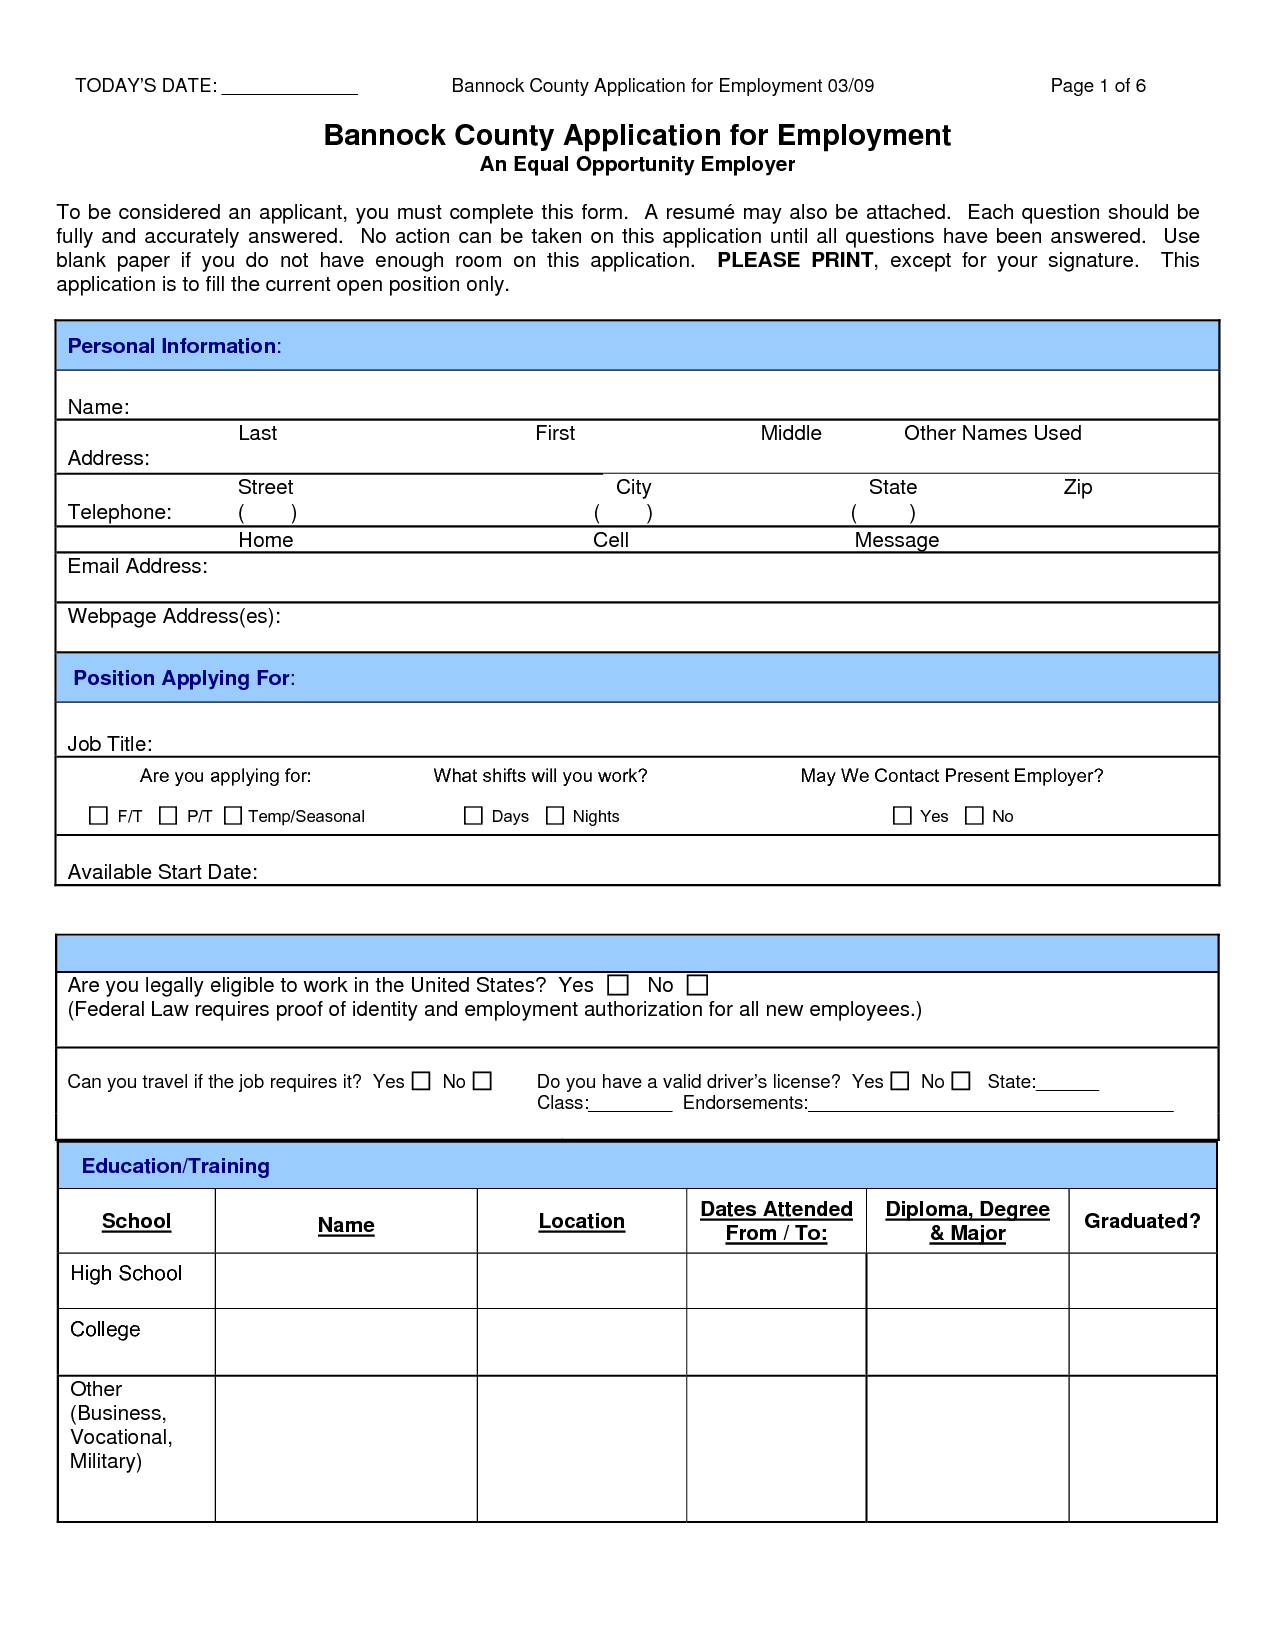 Sample job application form pdf bannock country application for sample job application form pdf bannock country application for employment altavistaventures Choice Image